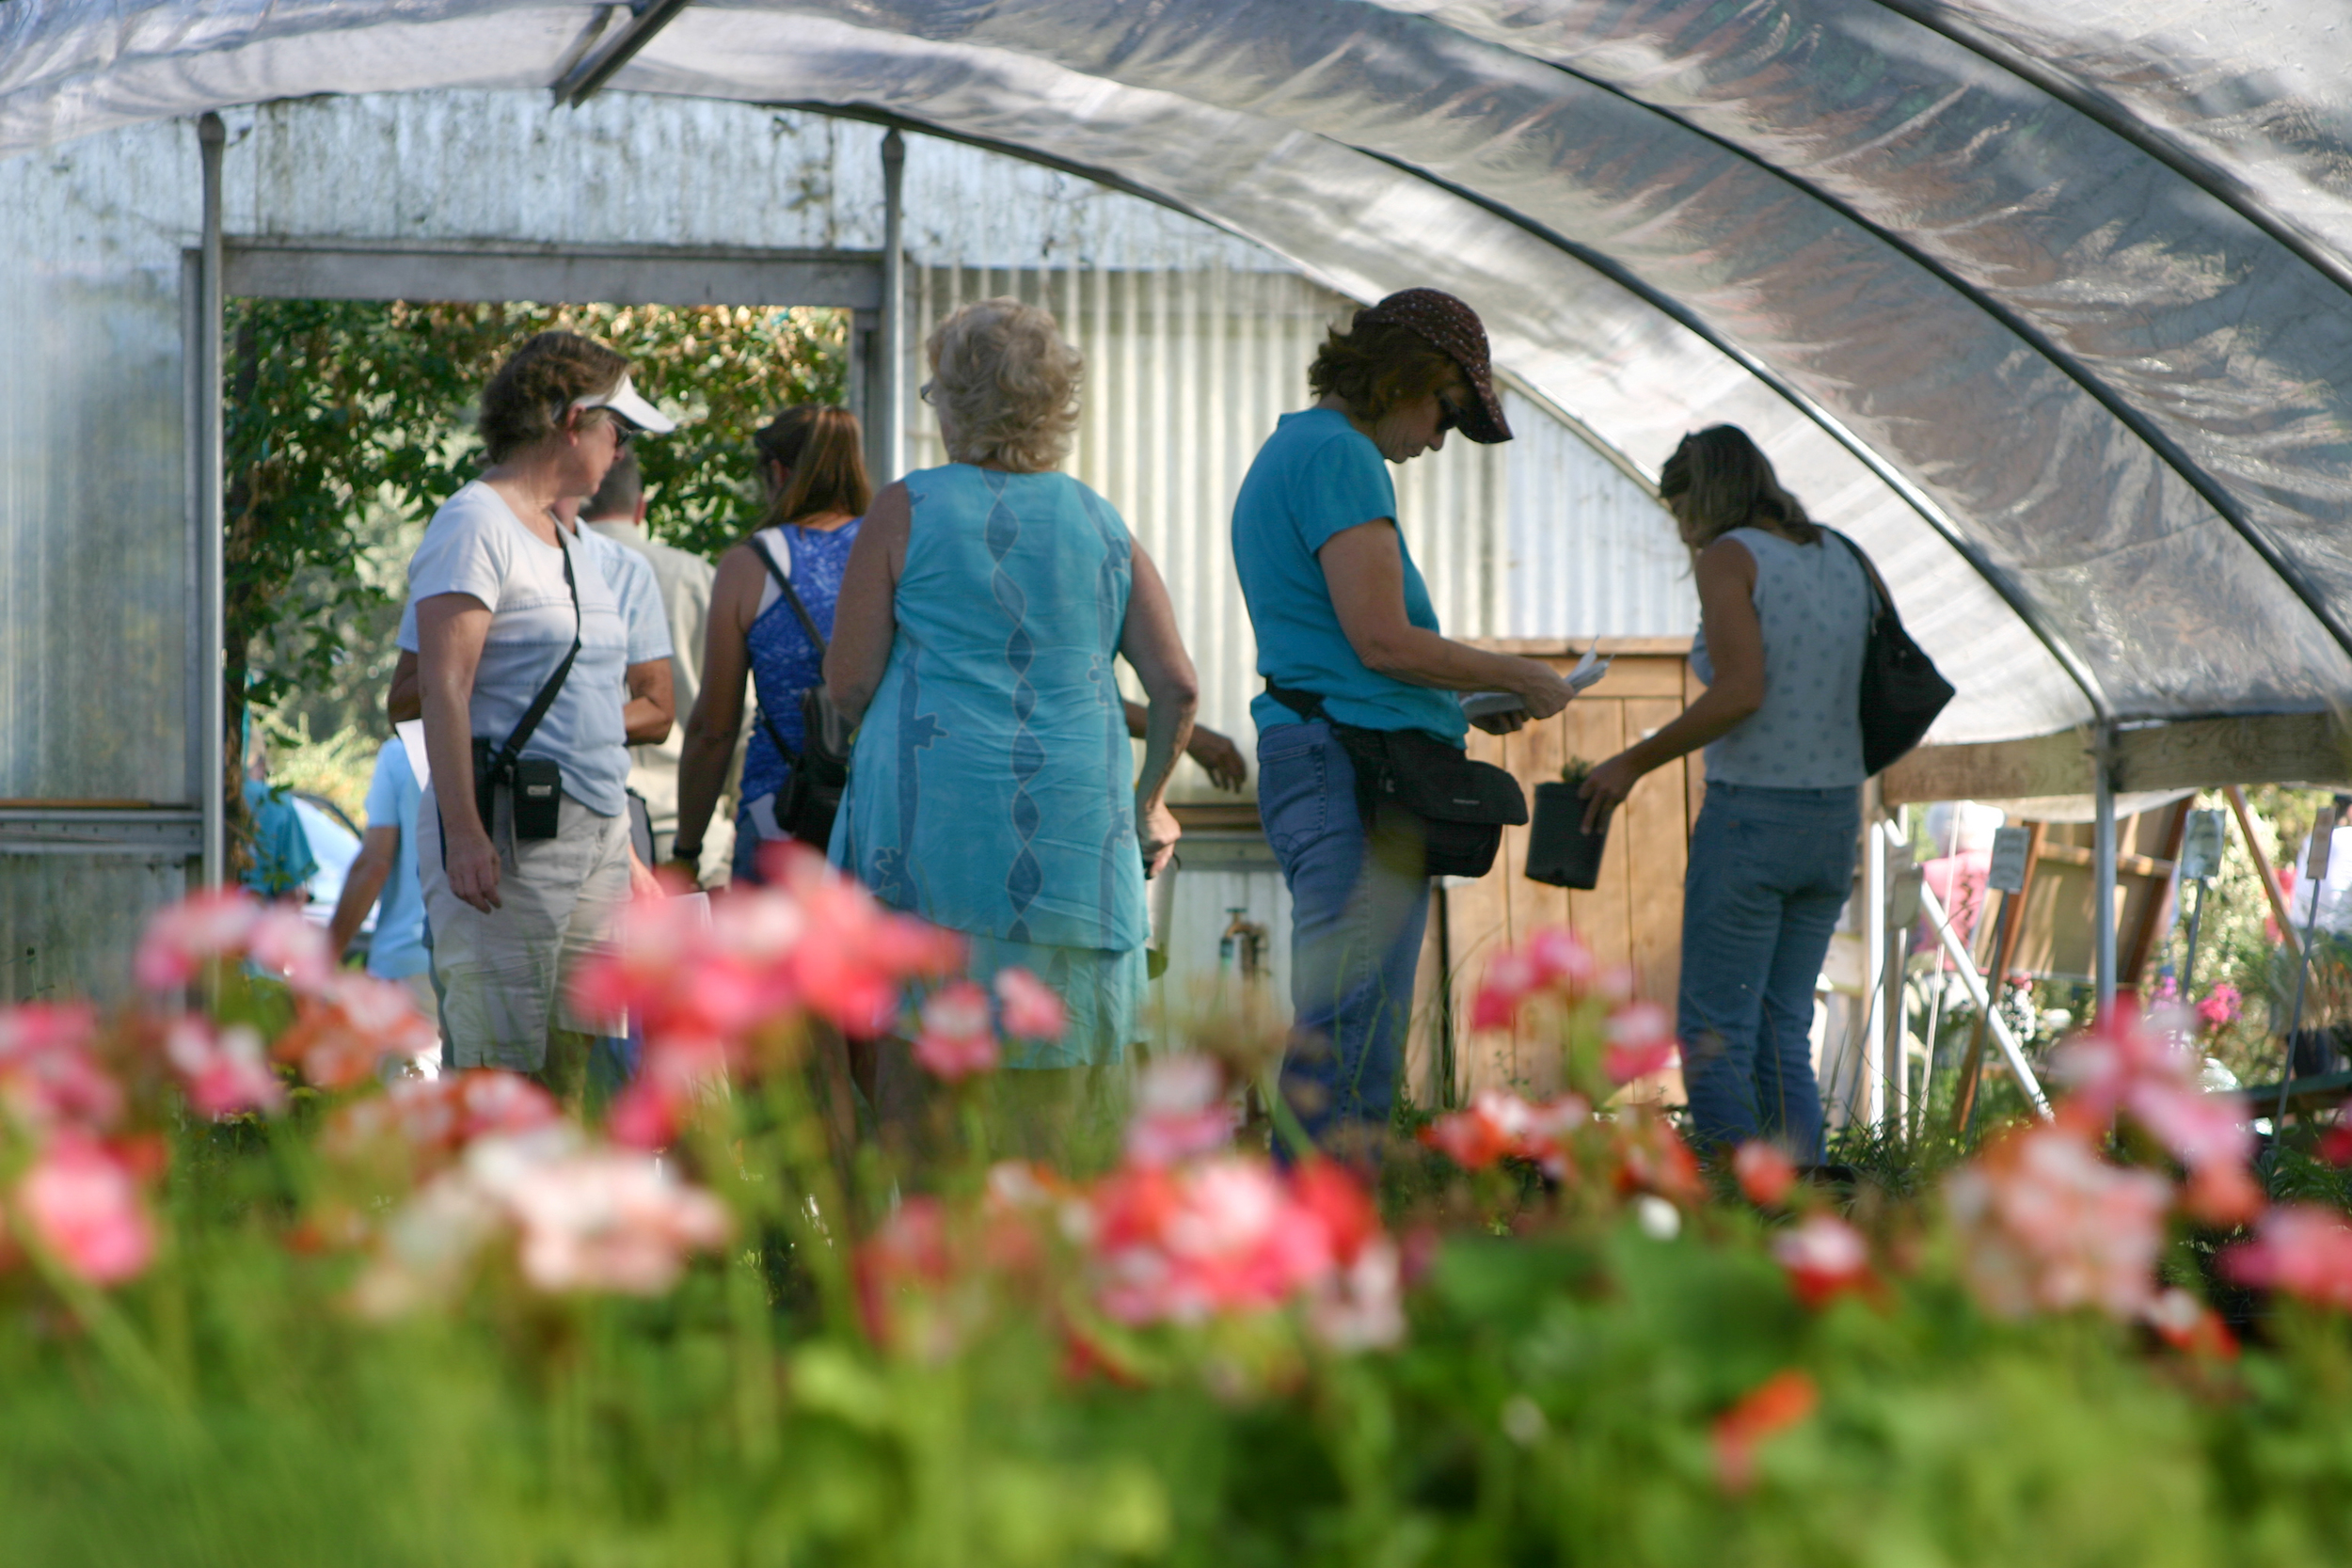 The public browses greenhouse filled with products grown through the Jail Industry Program.